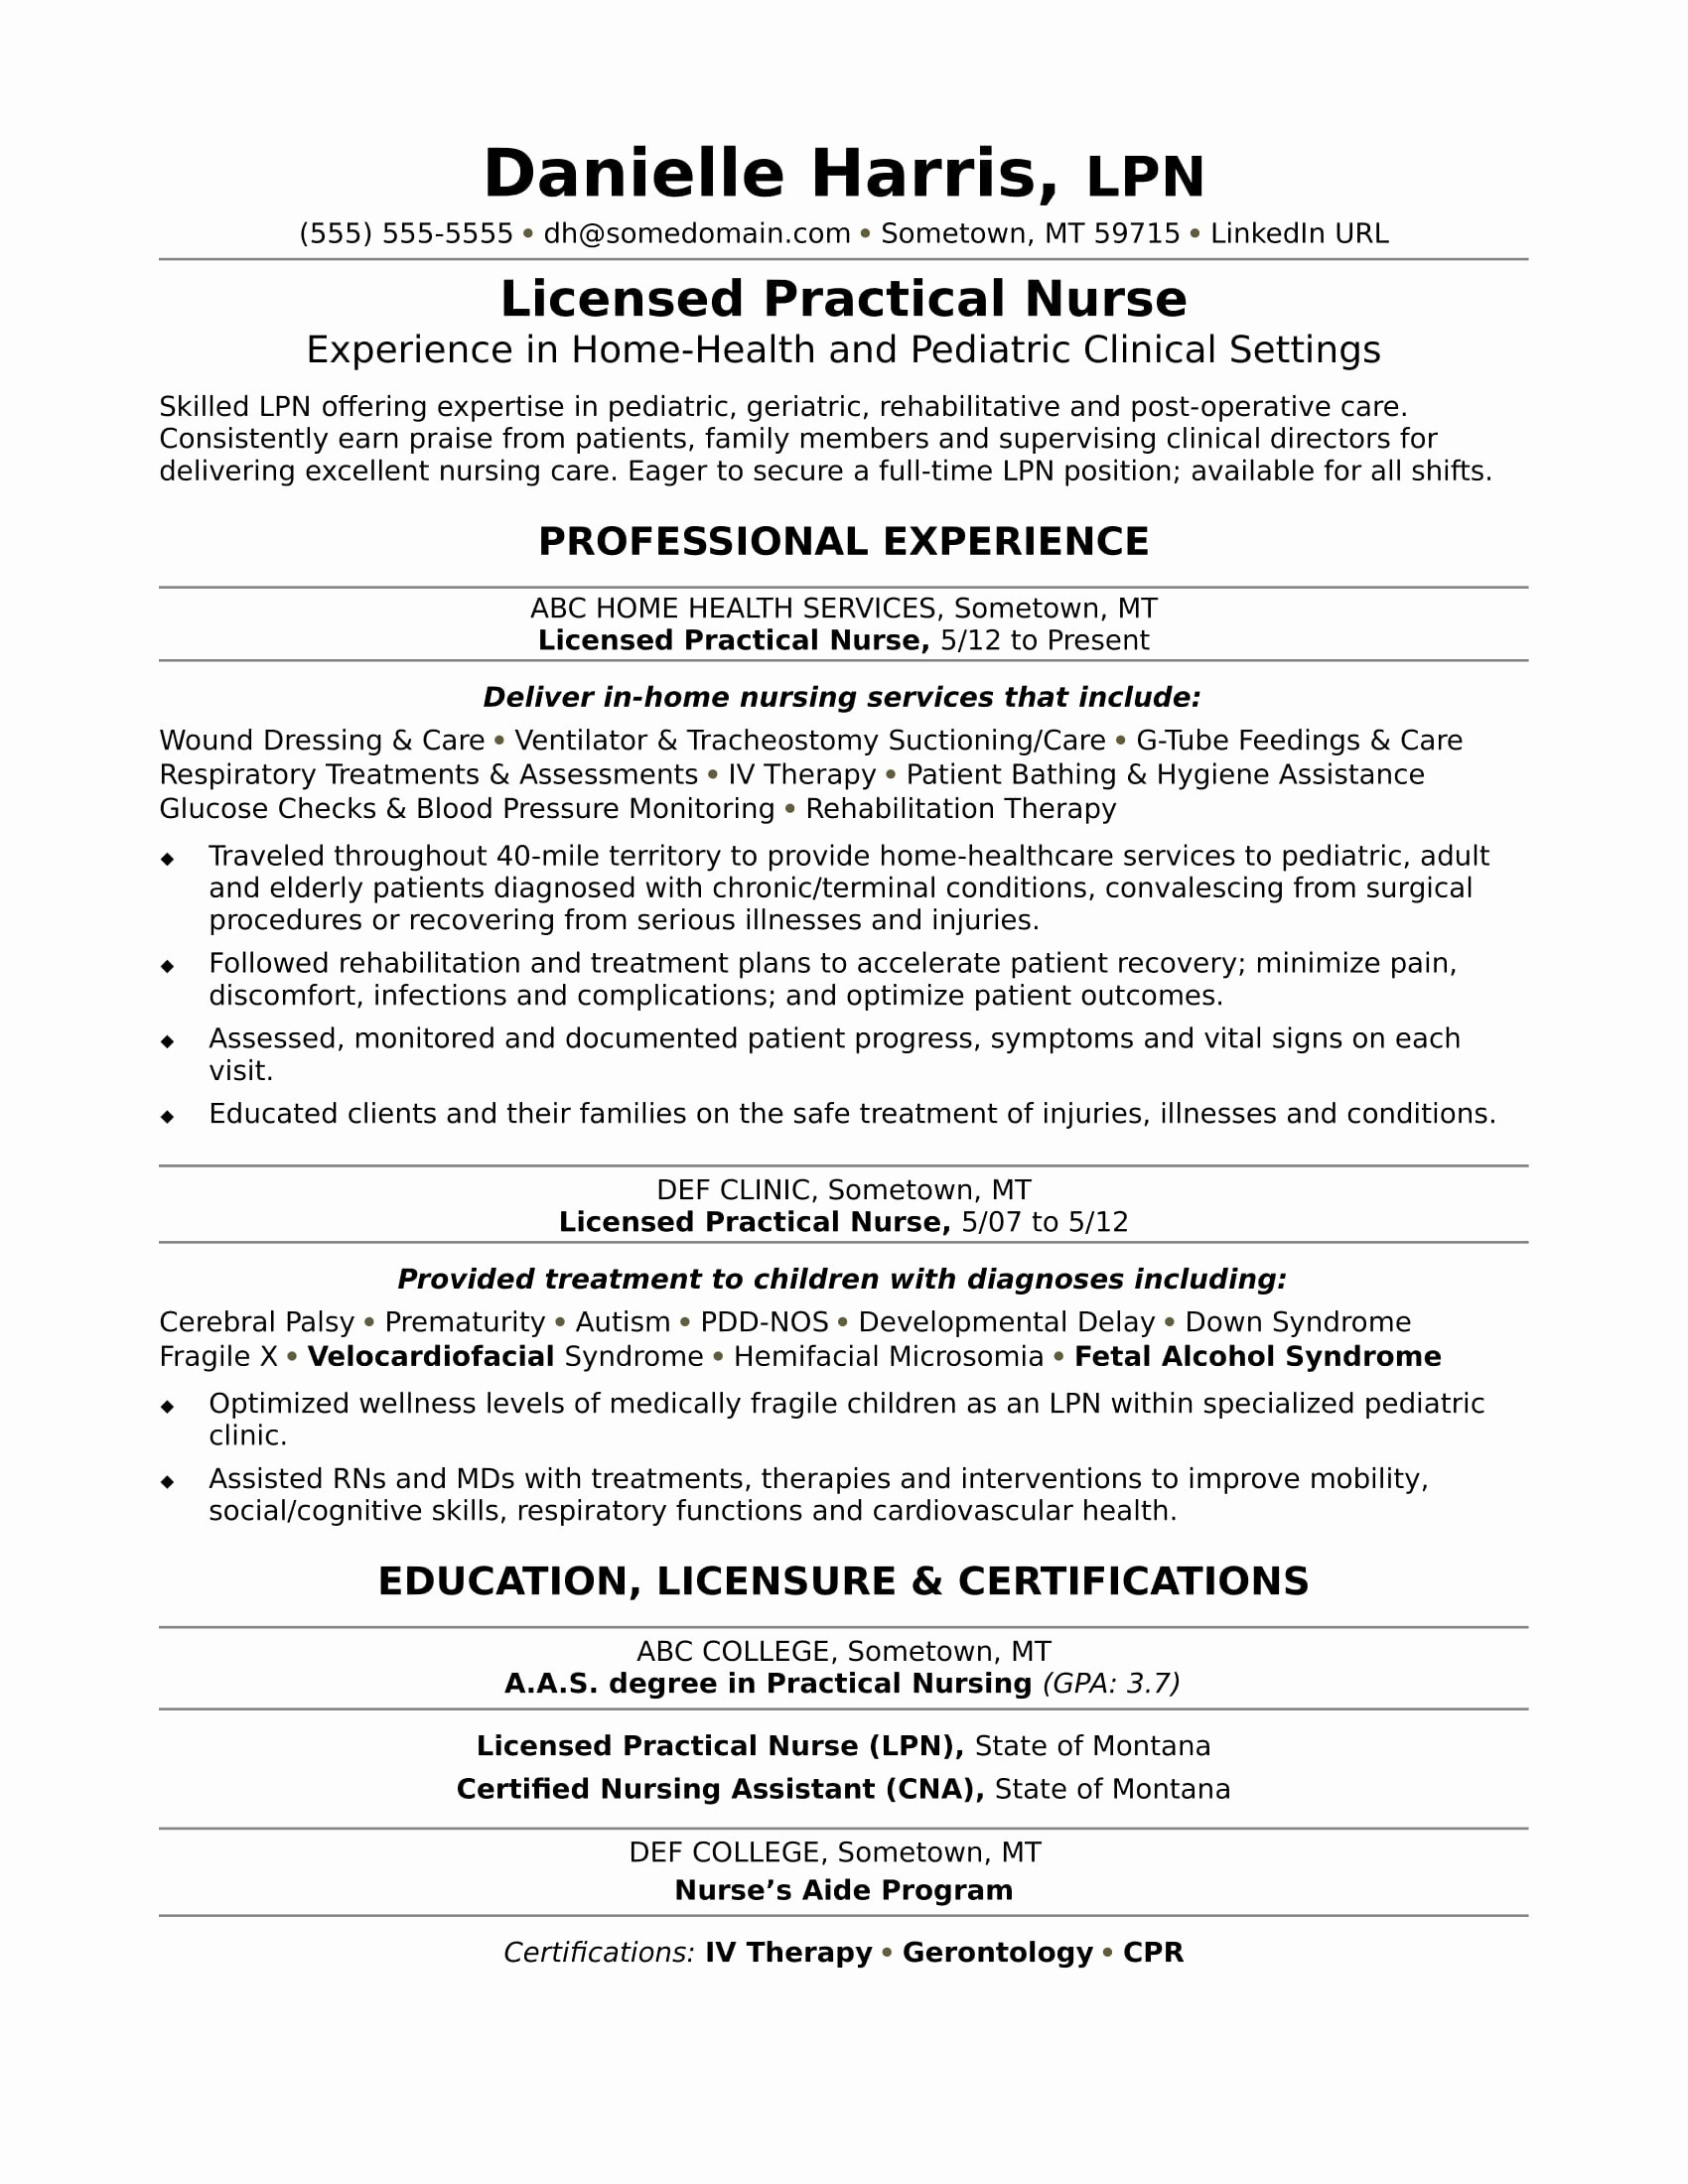 Grad School Resume - 20 Elegant Graduate School Resume Sample